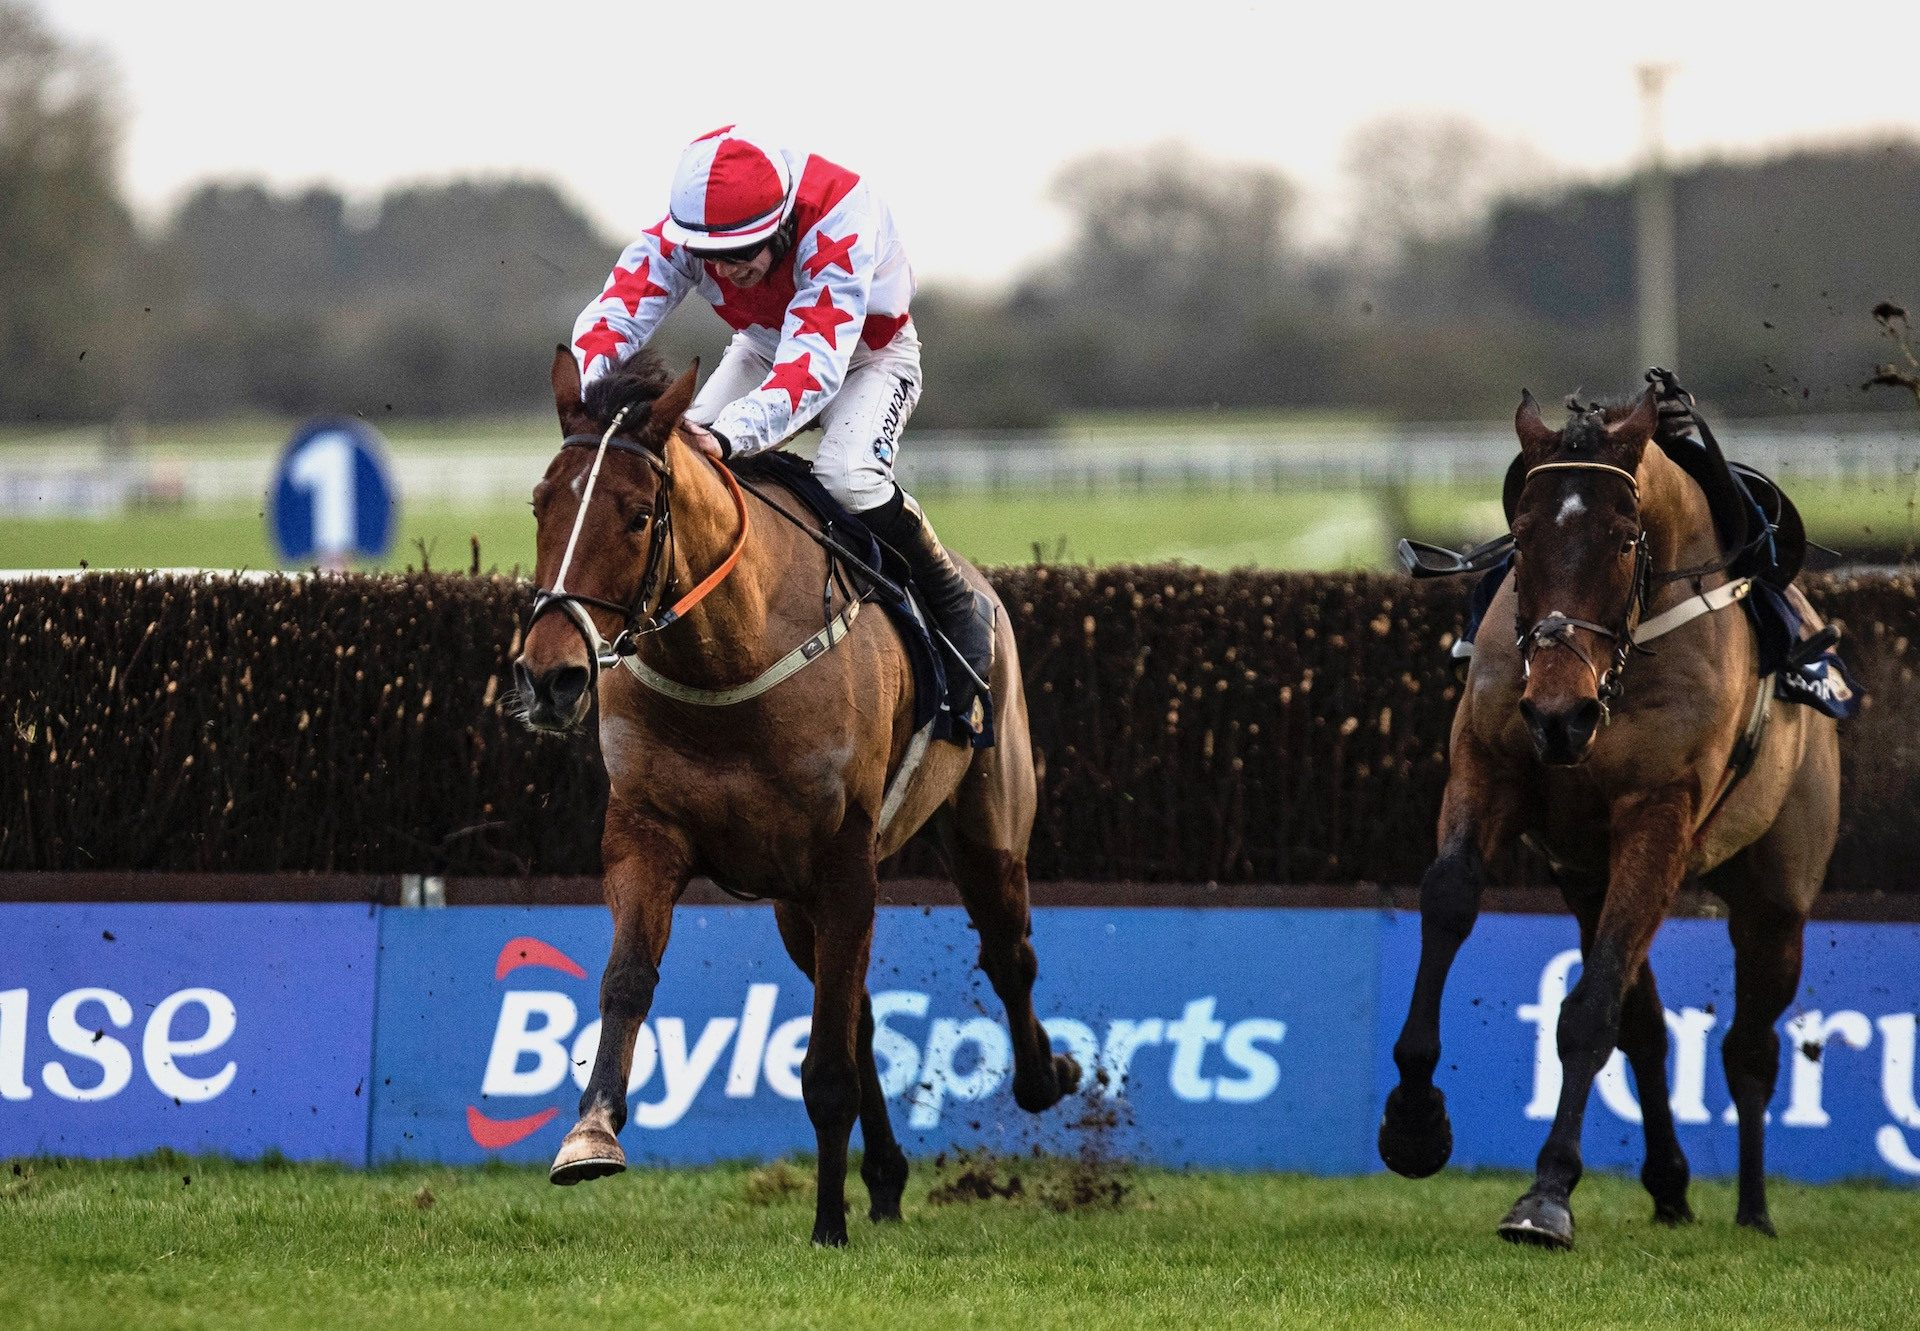 Forza Milan (Milan) Wins The Beginners Chase At Fairyhouse